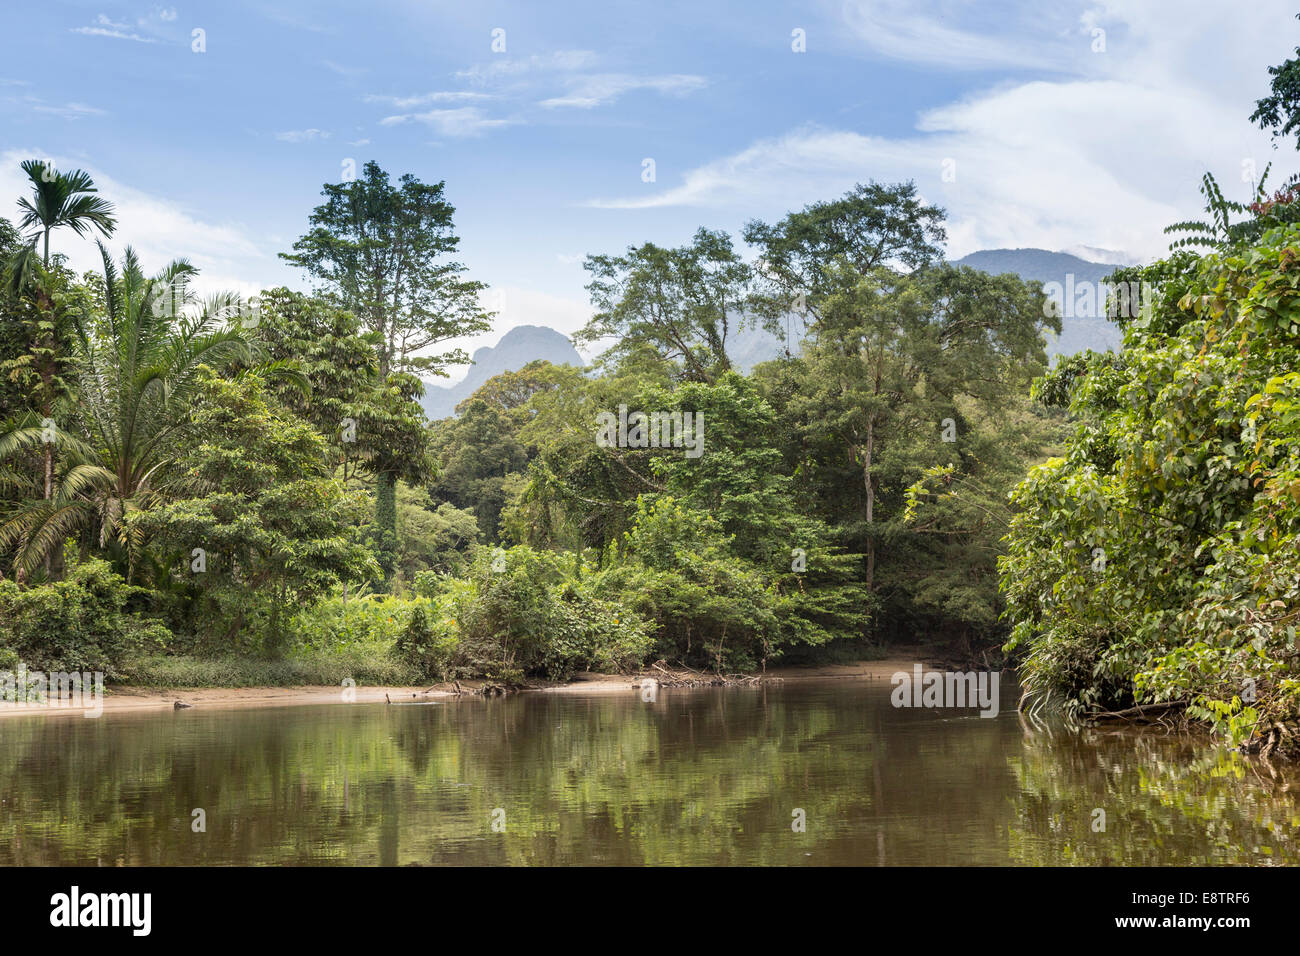 Melinau River with rainforest and mountains, Gunung Mulu national park, Sarawak, Malaysia - Stock Image